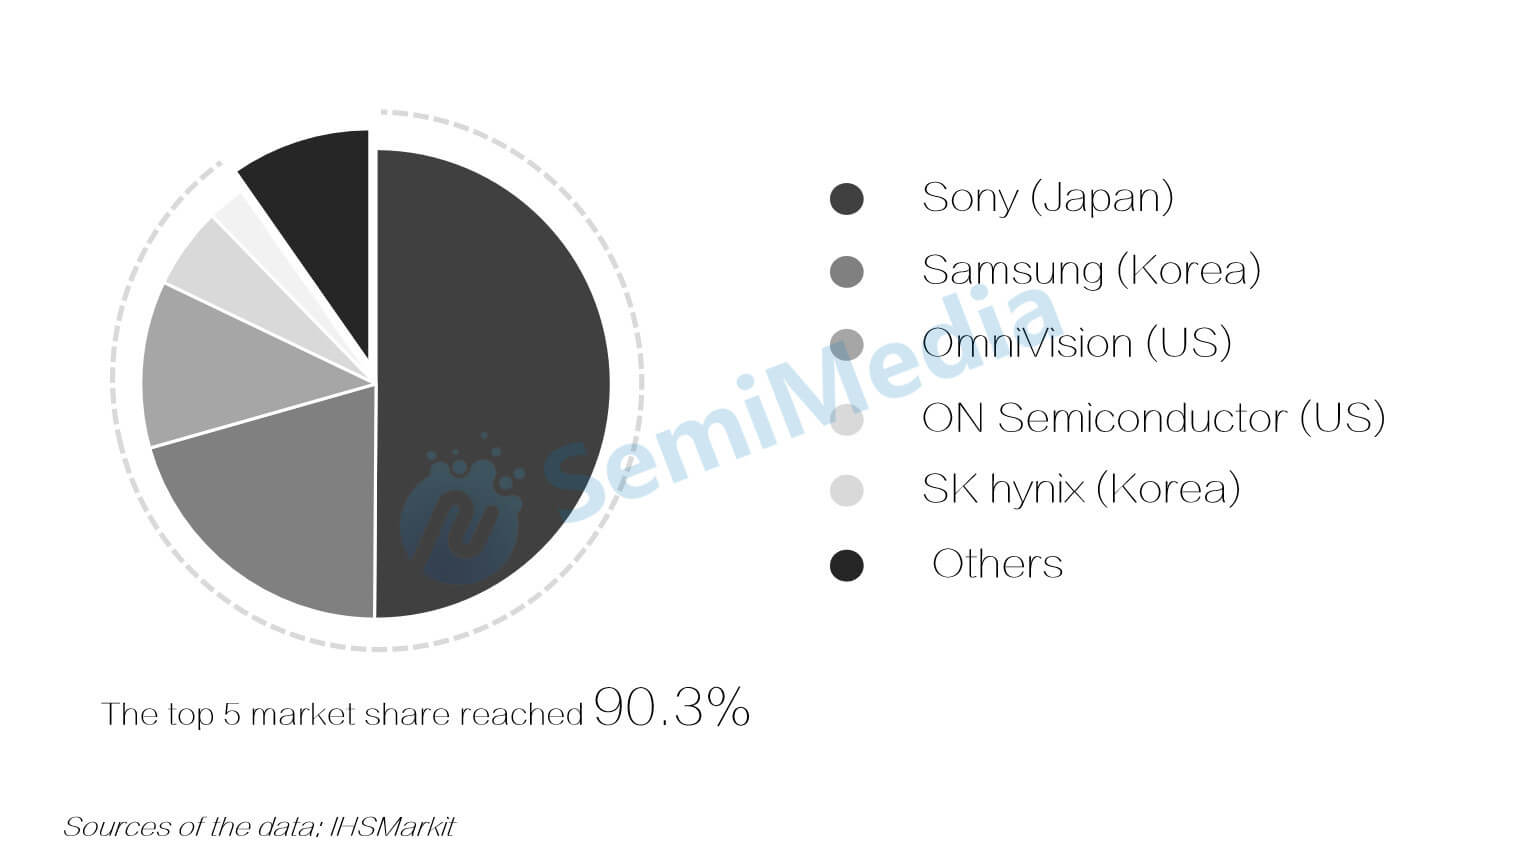 Sony accounts for 50.1% of the global CMOS sensor market share-SemiMedia